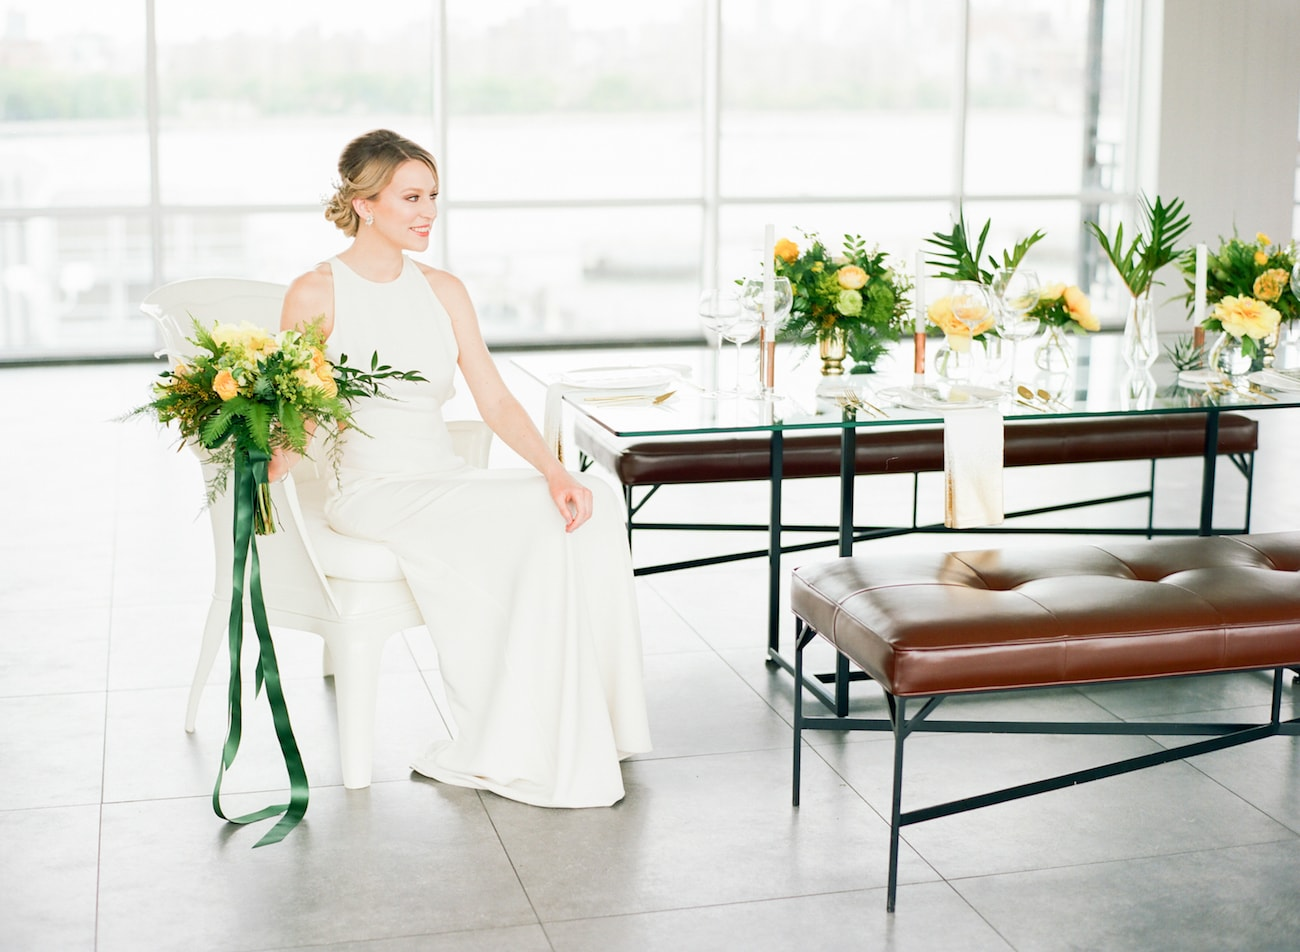 Modern Tropical City Wedding Decor | Credit: Ruth Eileen Photography